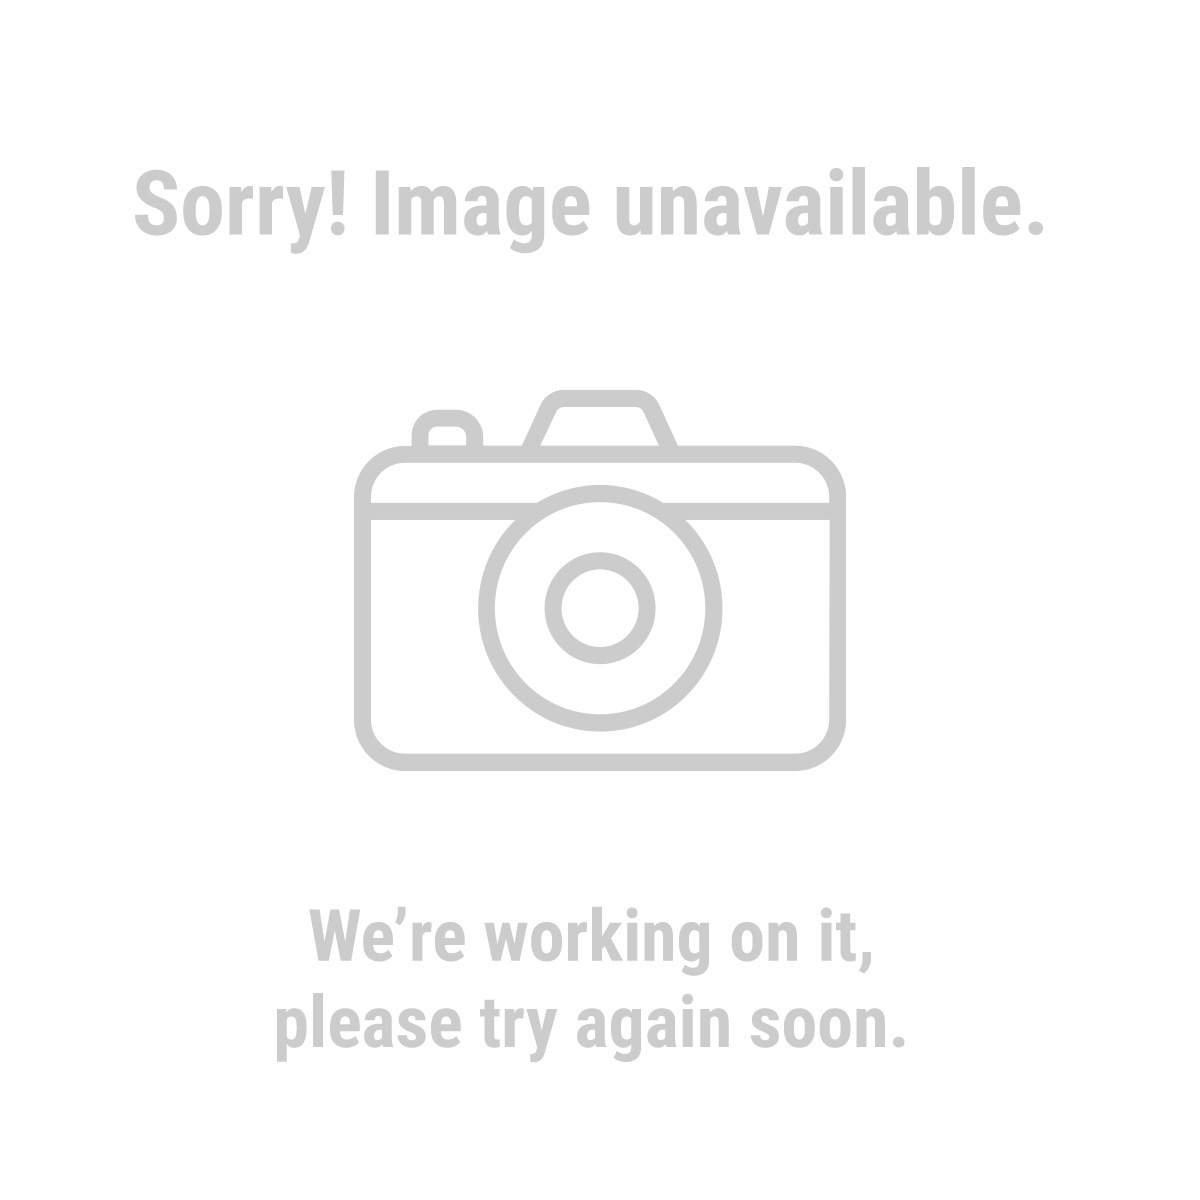 Pittsburgh® Automotive 46781 4 Piece Door Skin Repair Kit